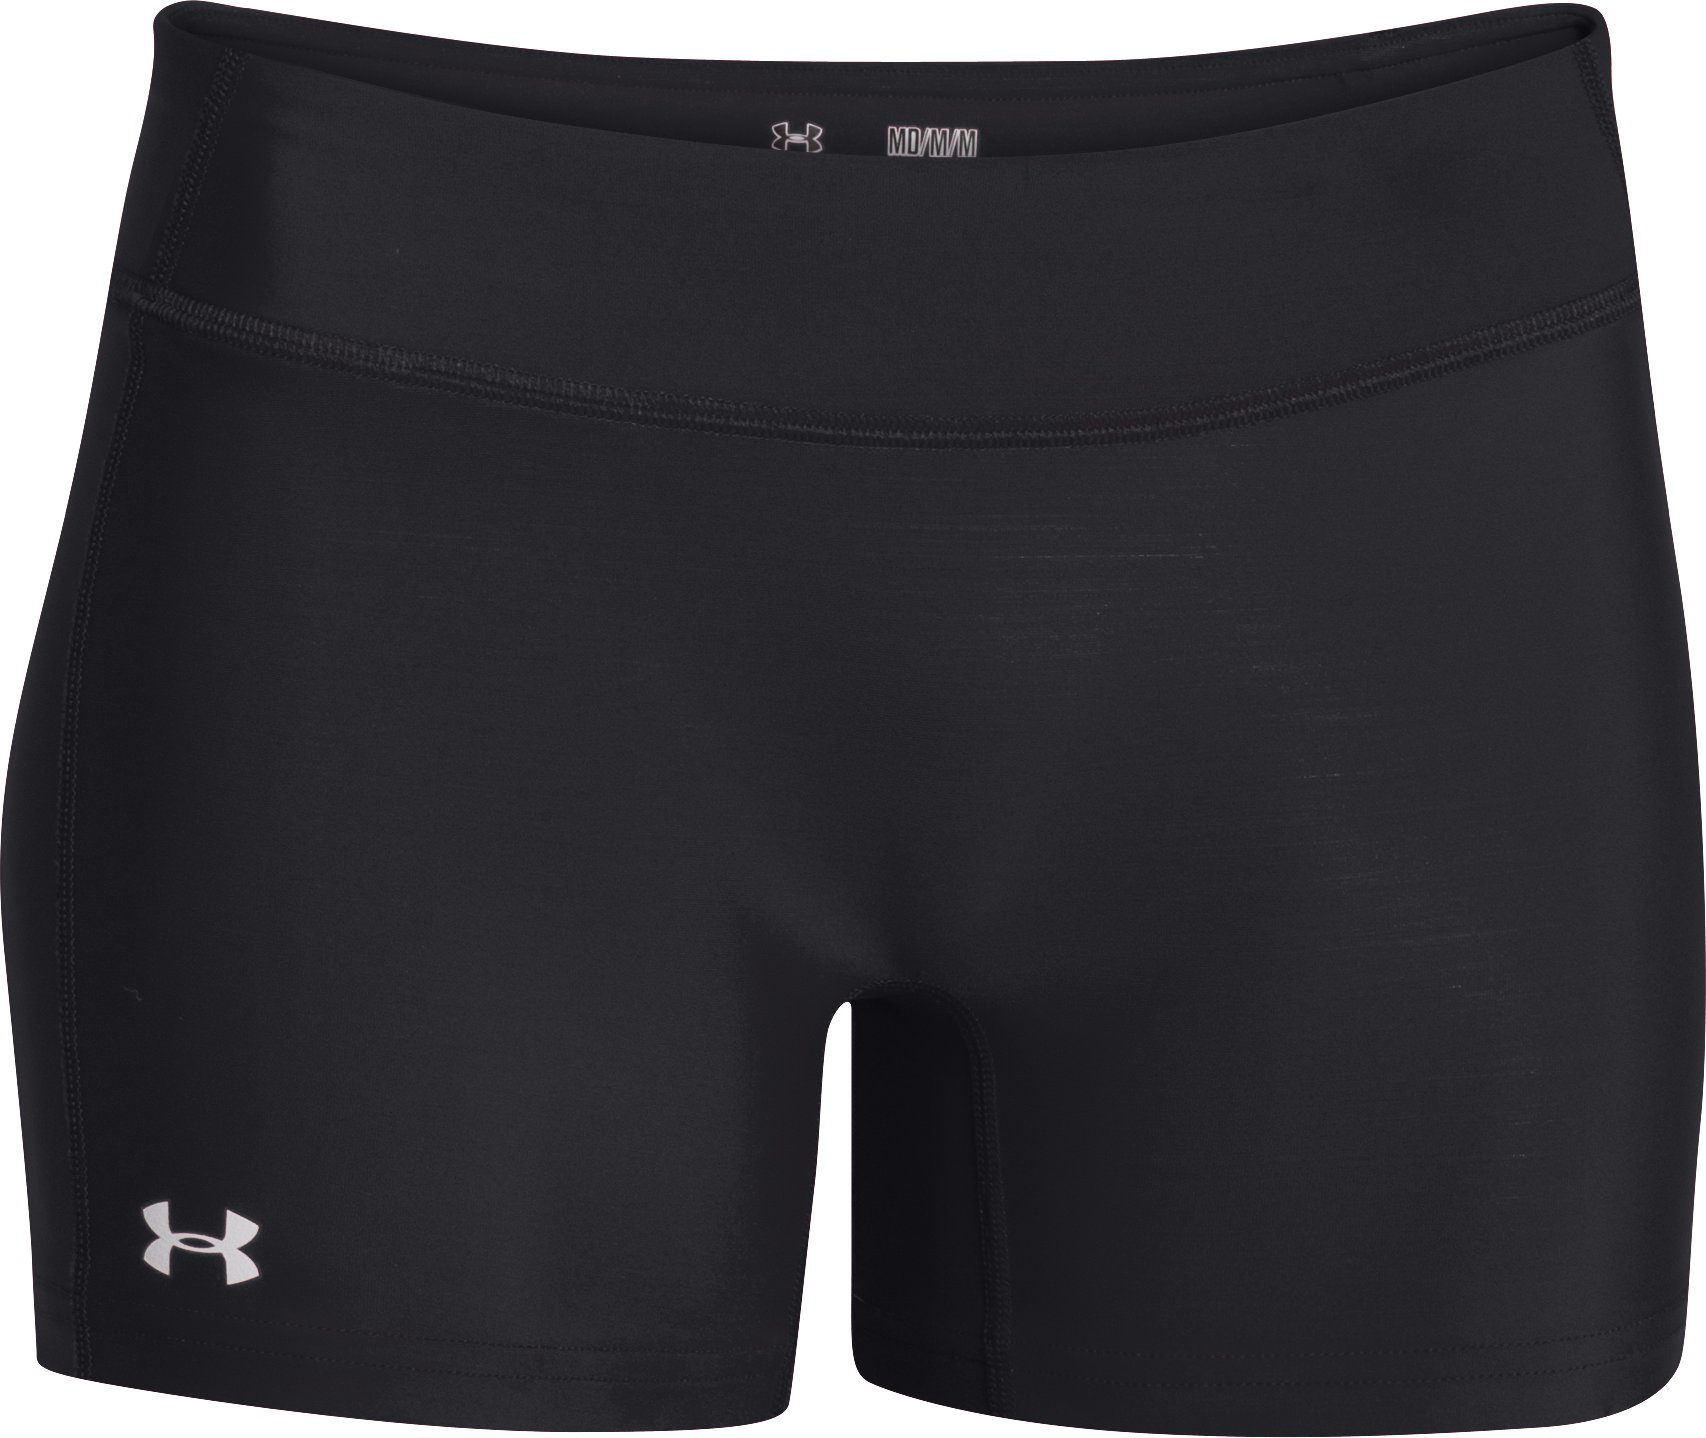 "Women's UA React 4"" Volleyball Shorts, Black ,"